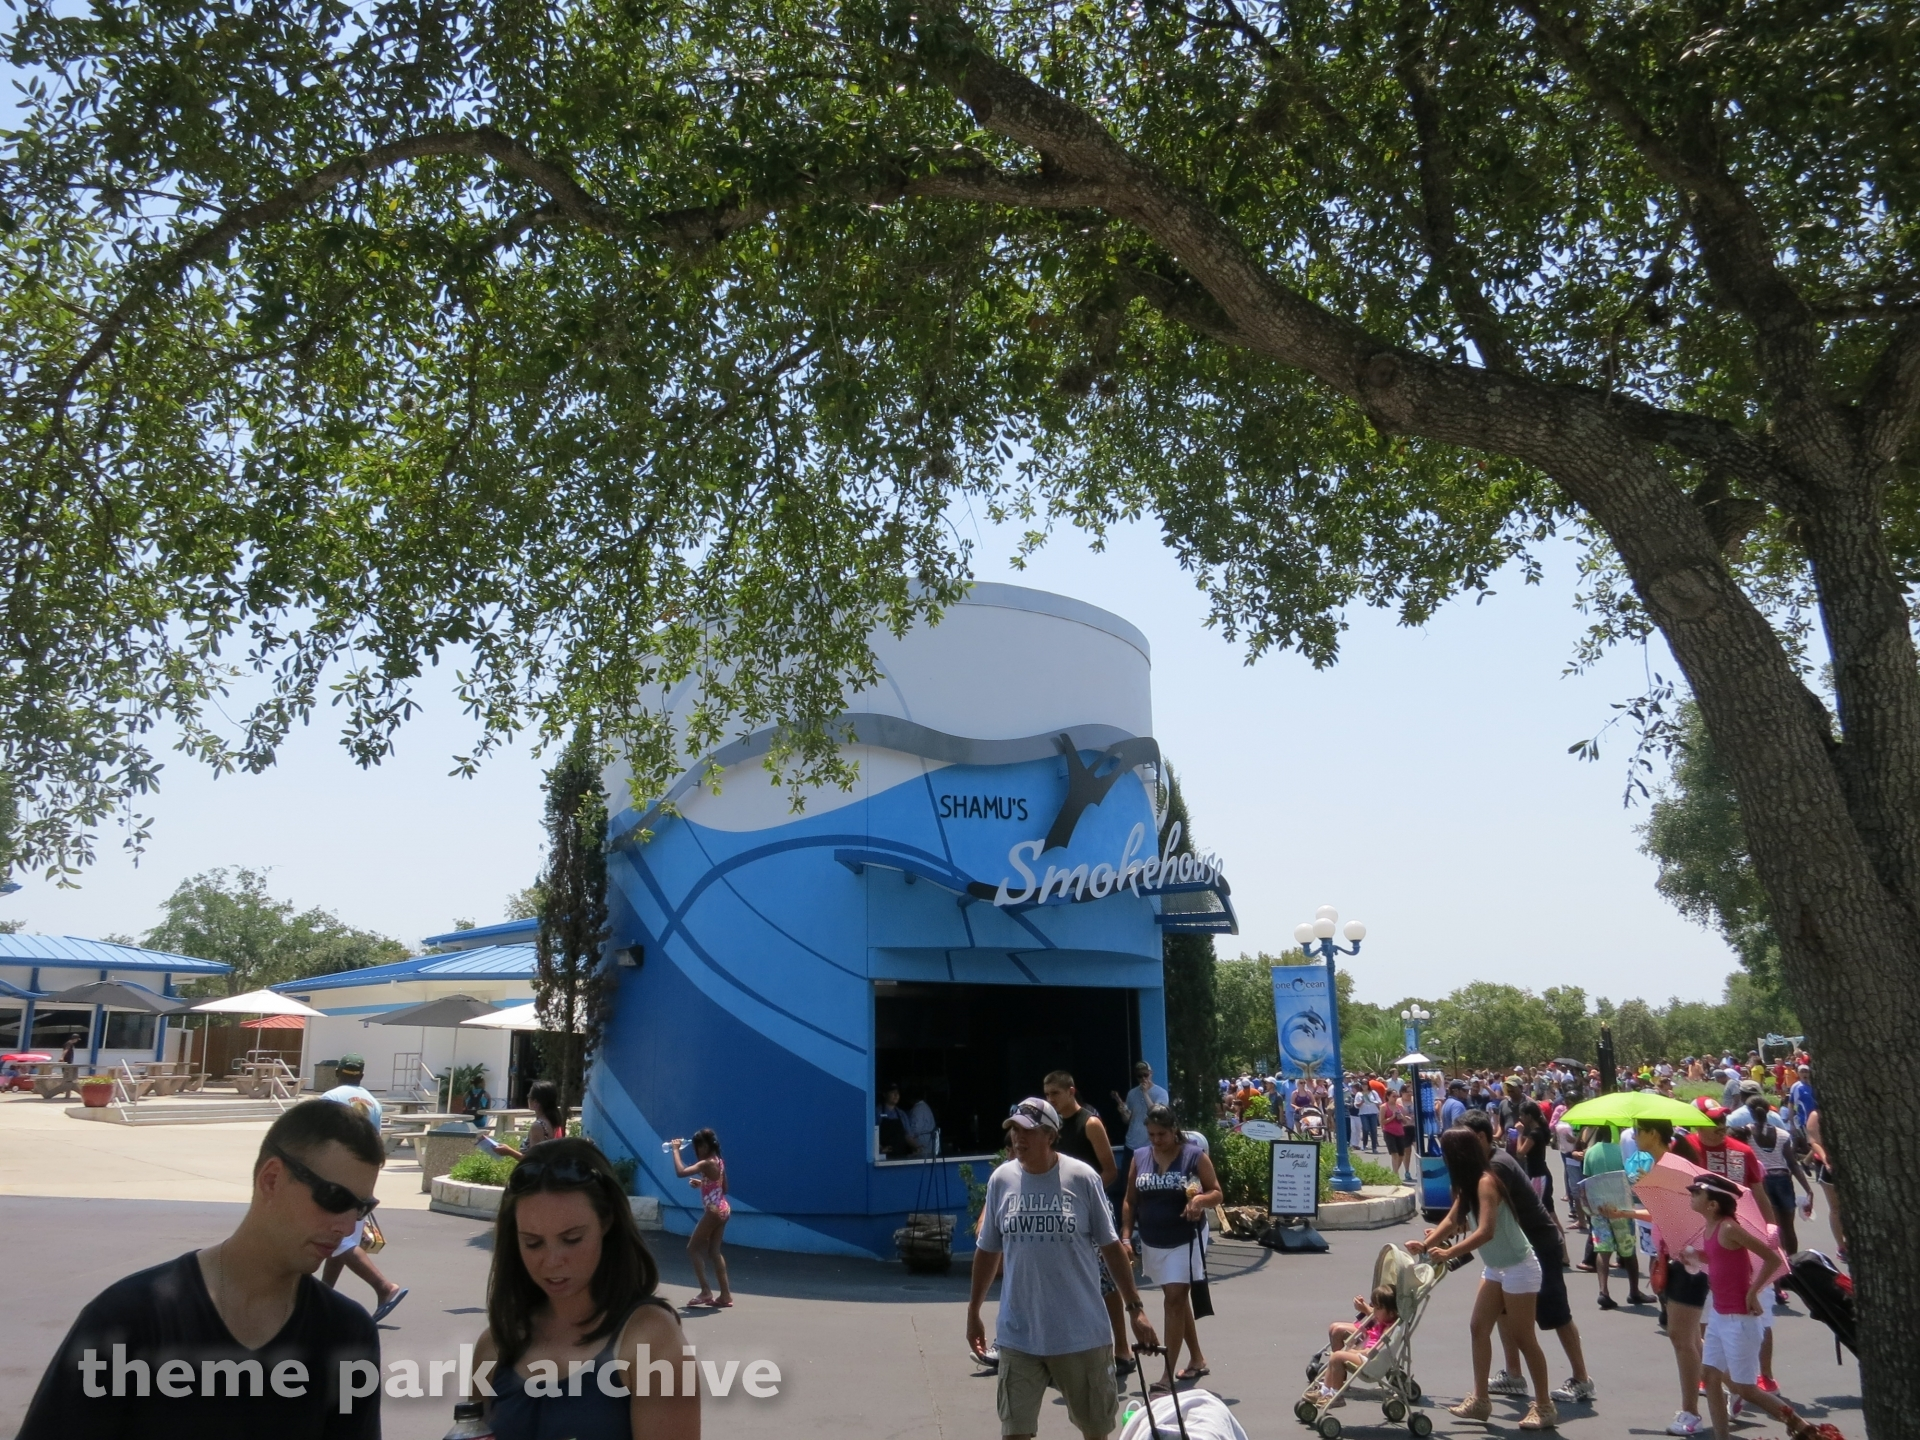 Shamu's Smokehouse at Sea World San Antonio